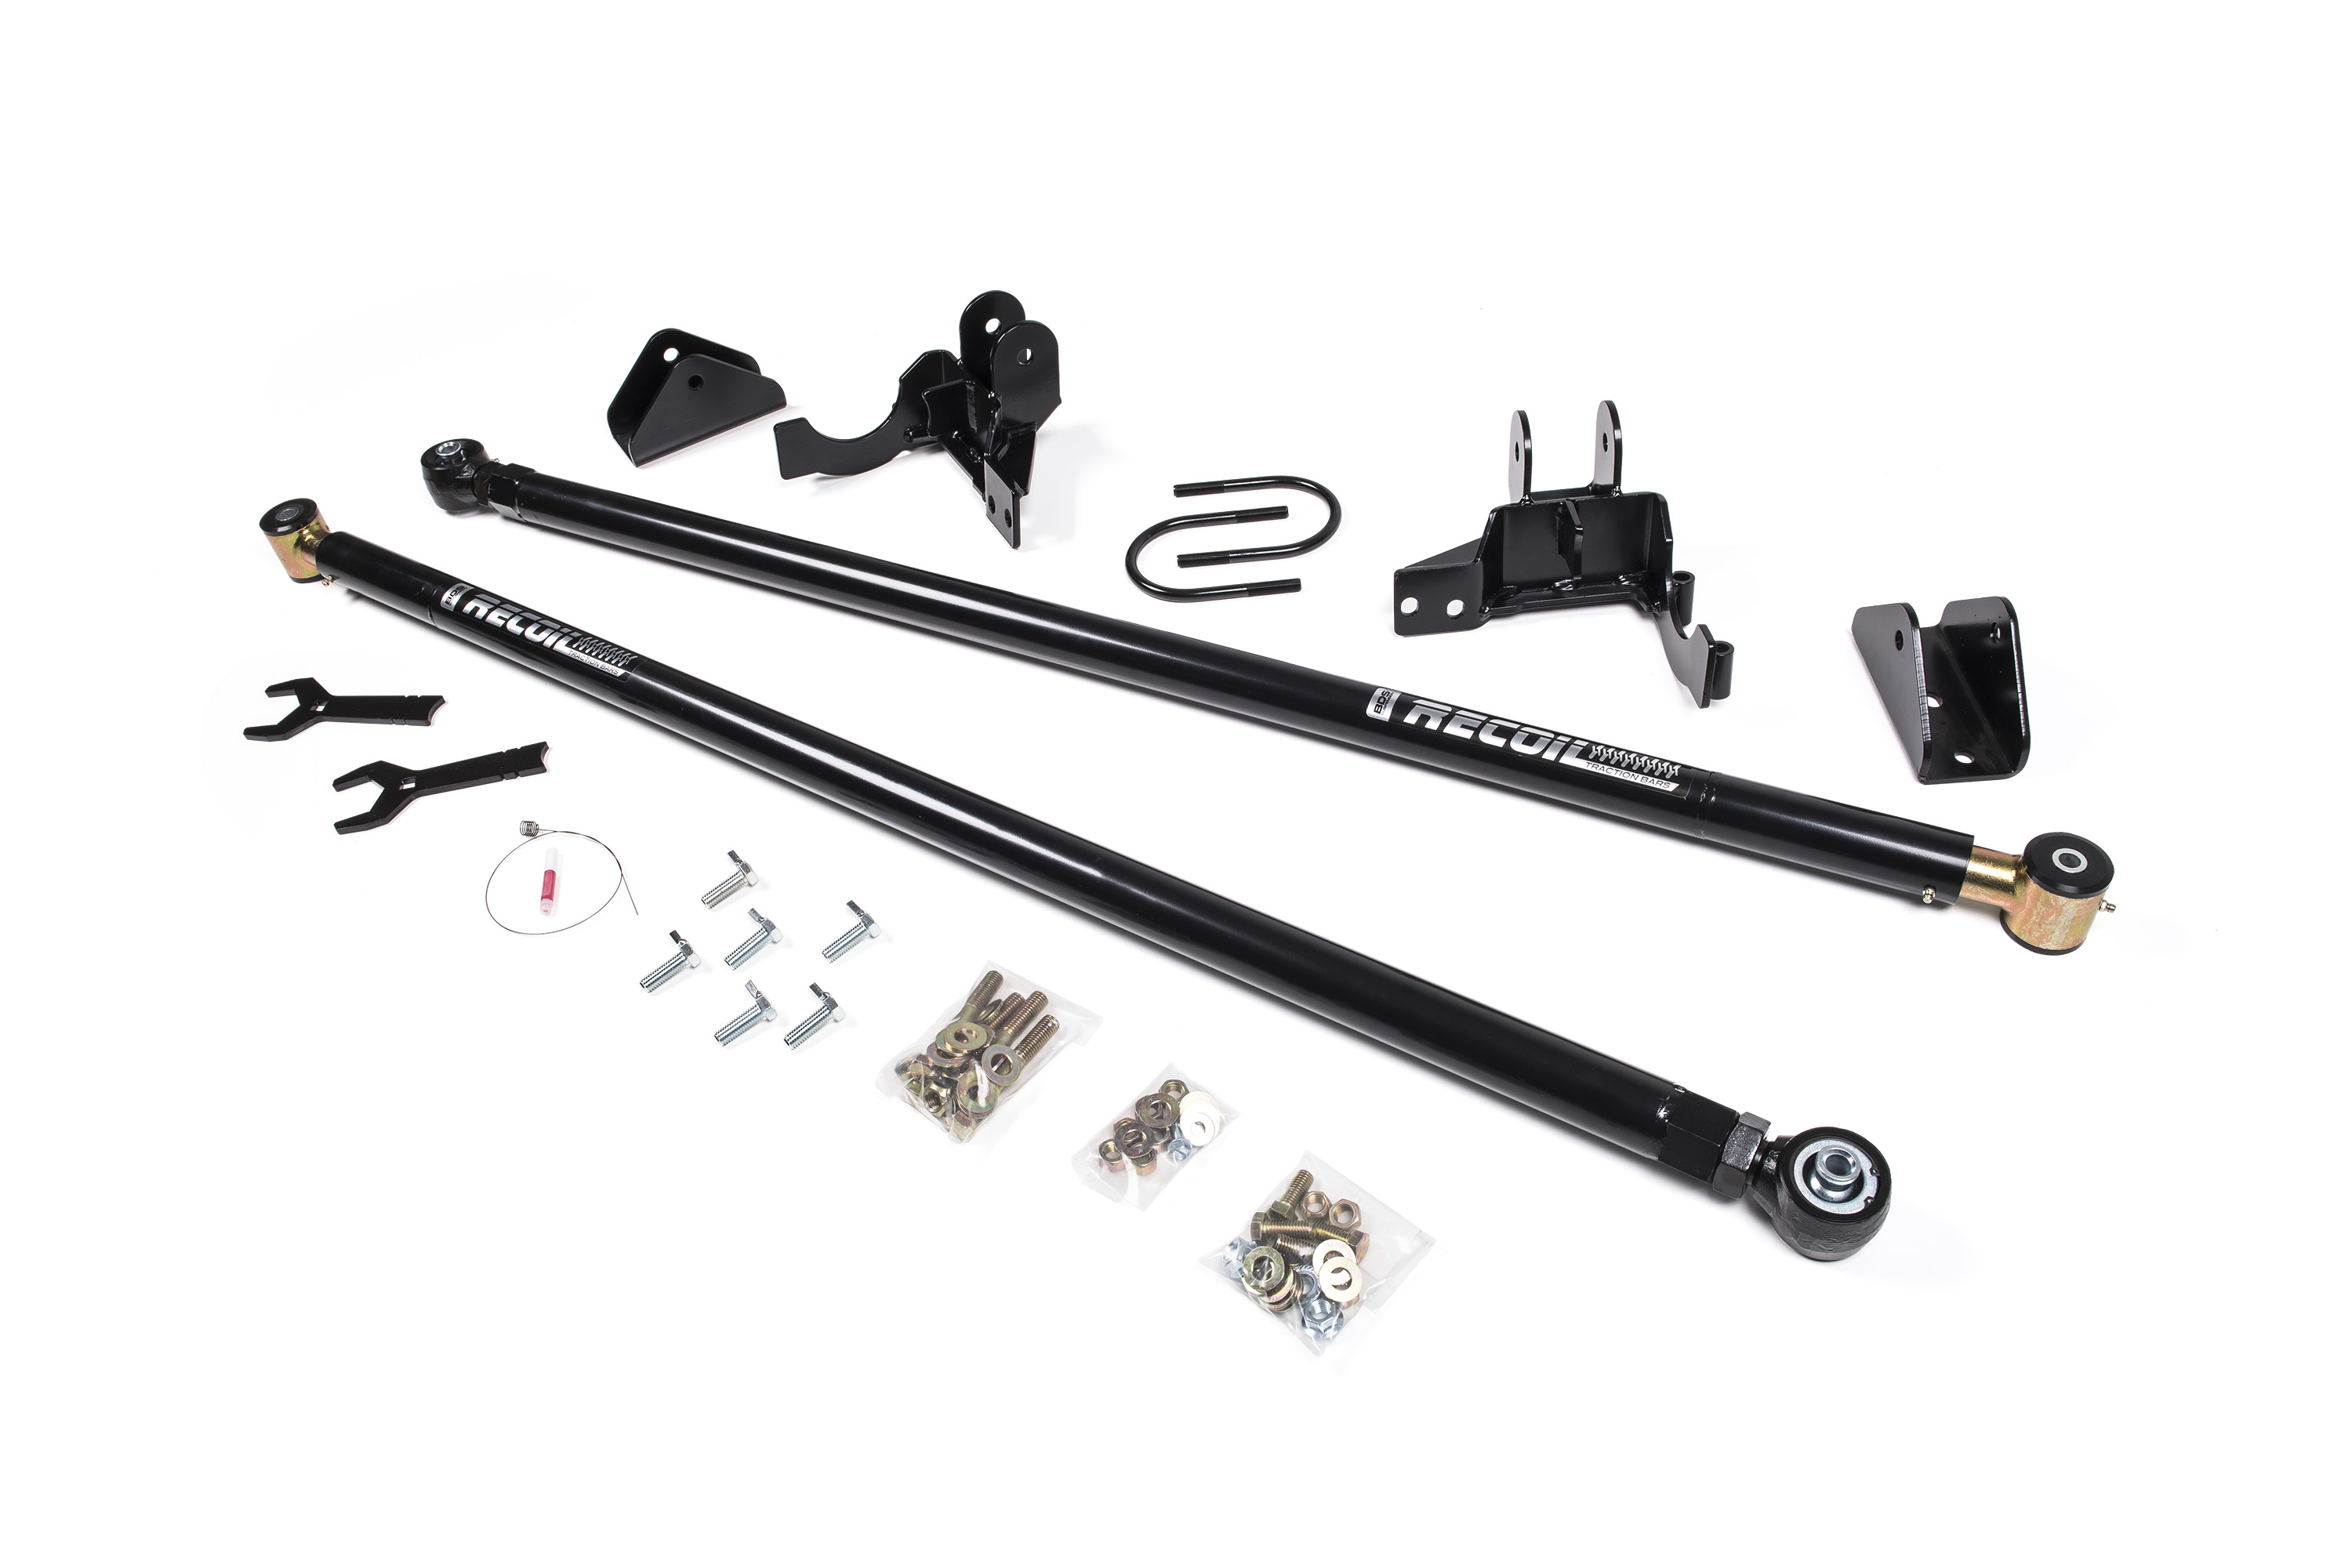 New Recoil Traction Bar Systems From Bds Suspension